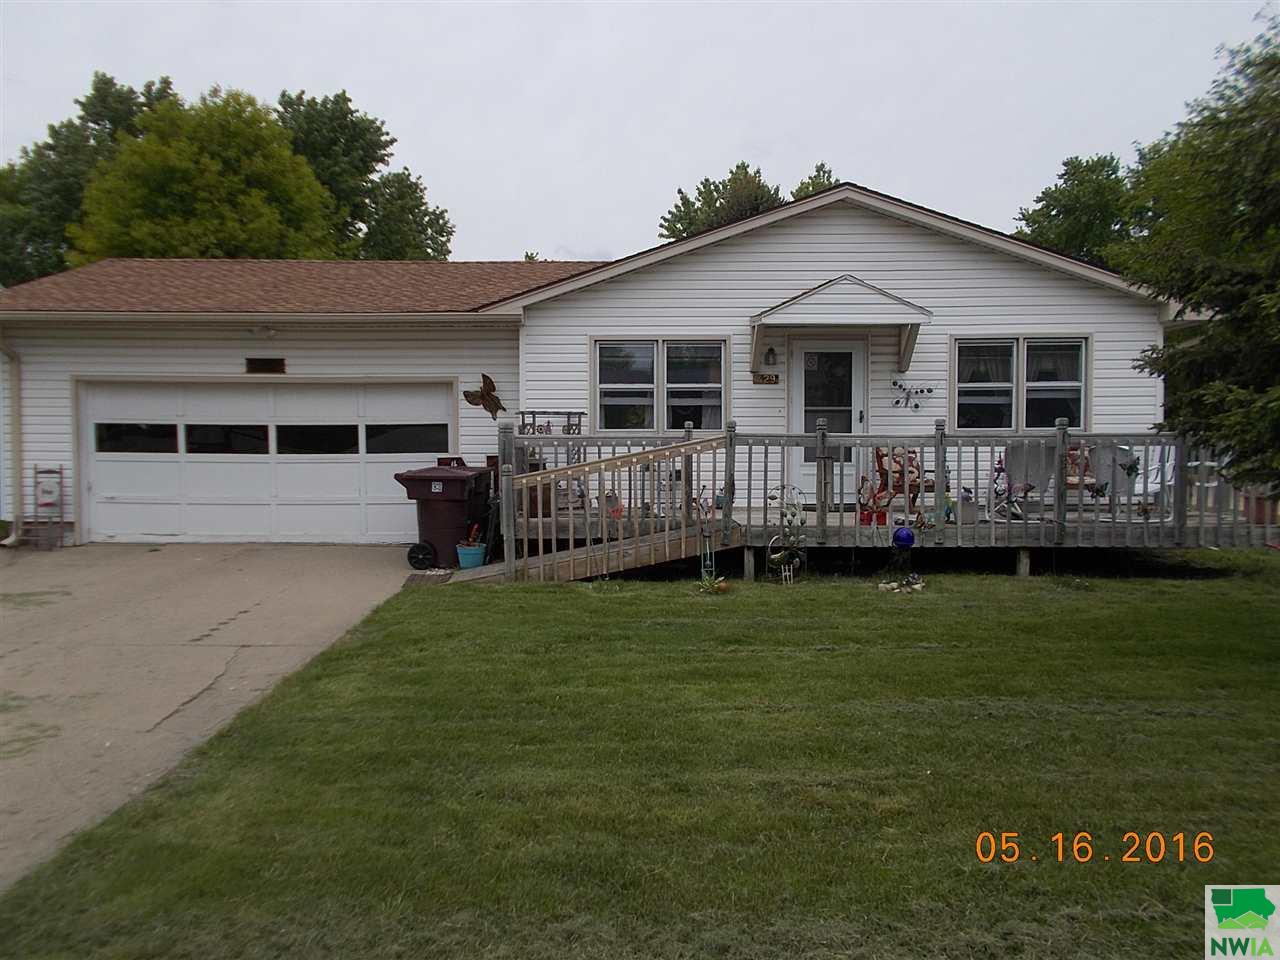 Property for sale at 429 E 14th, South Sioux City,  NE 68776